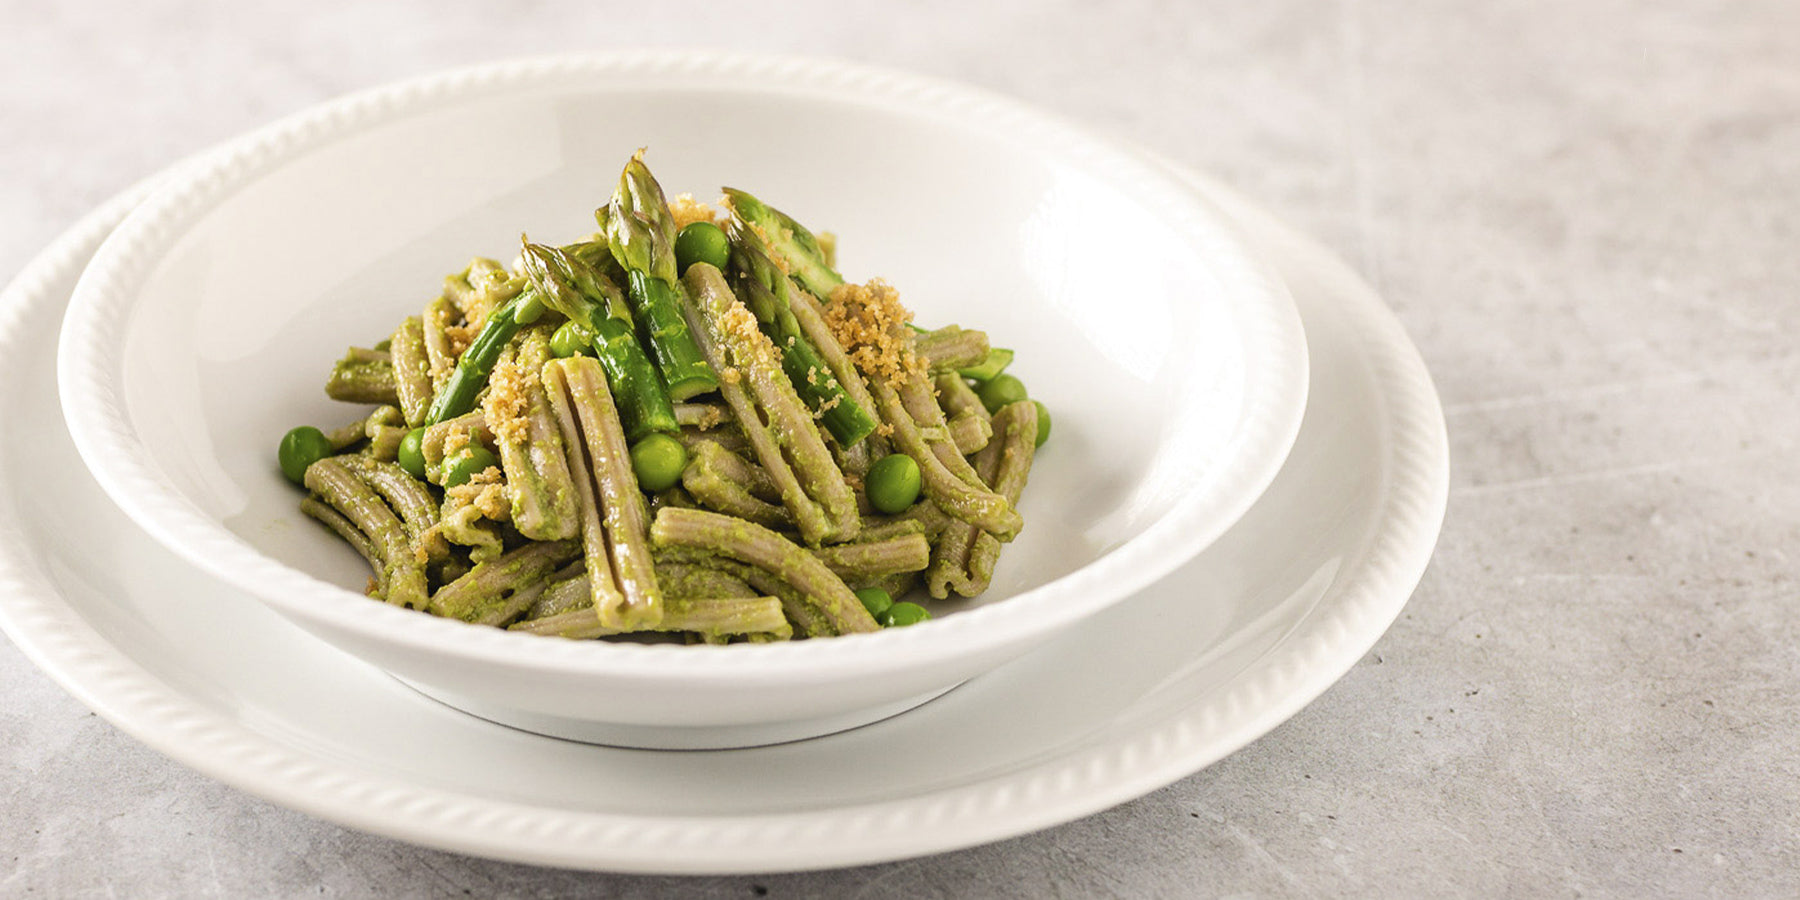 Plate of Sorghum Casarecce with Peas, Asparagus and Garlic Breadcrumbs